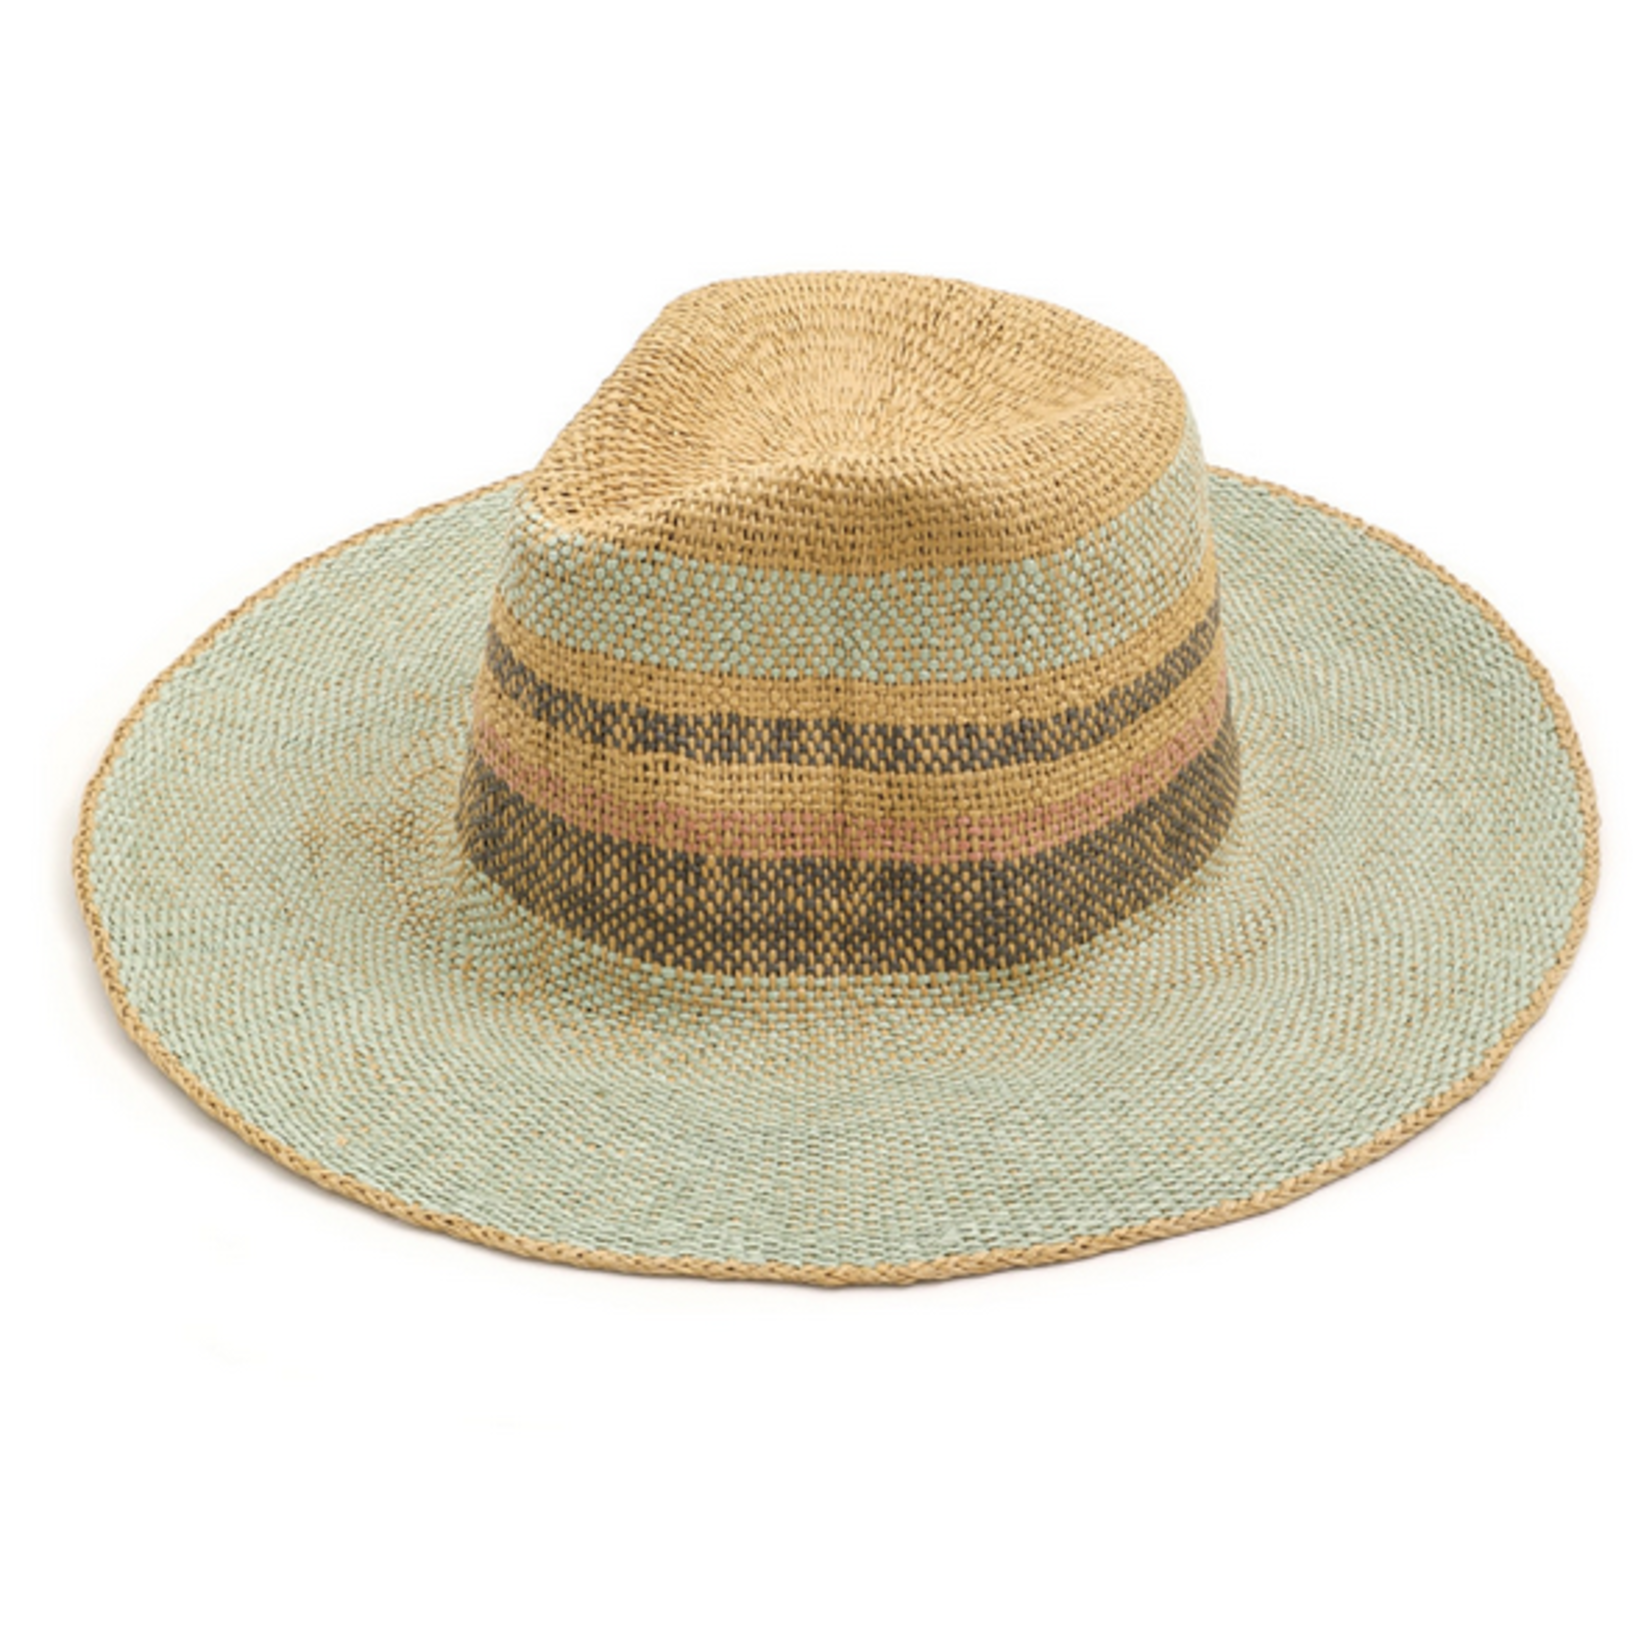 Anarchy Street Multi Color Straw Hat